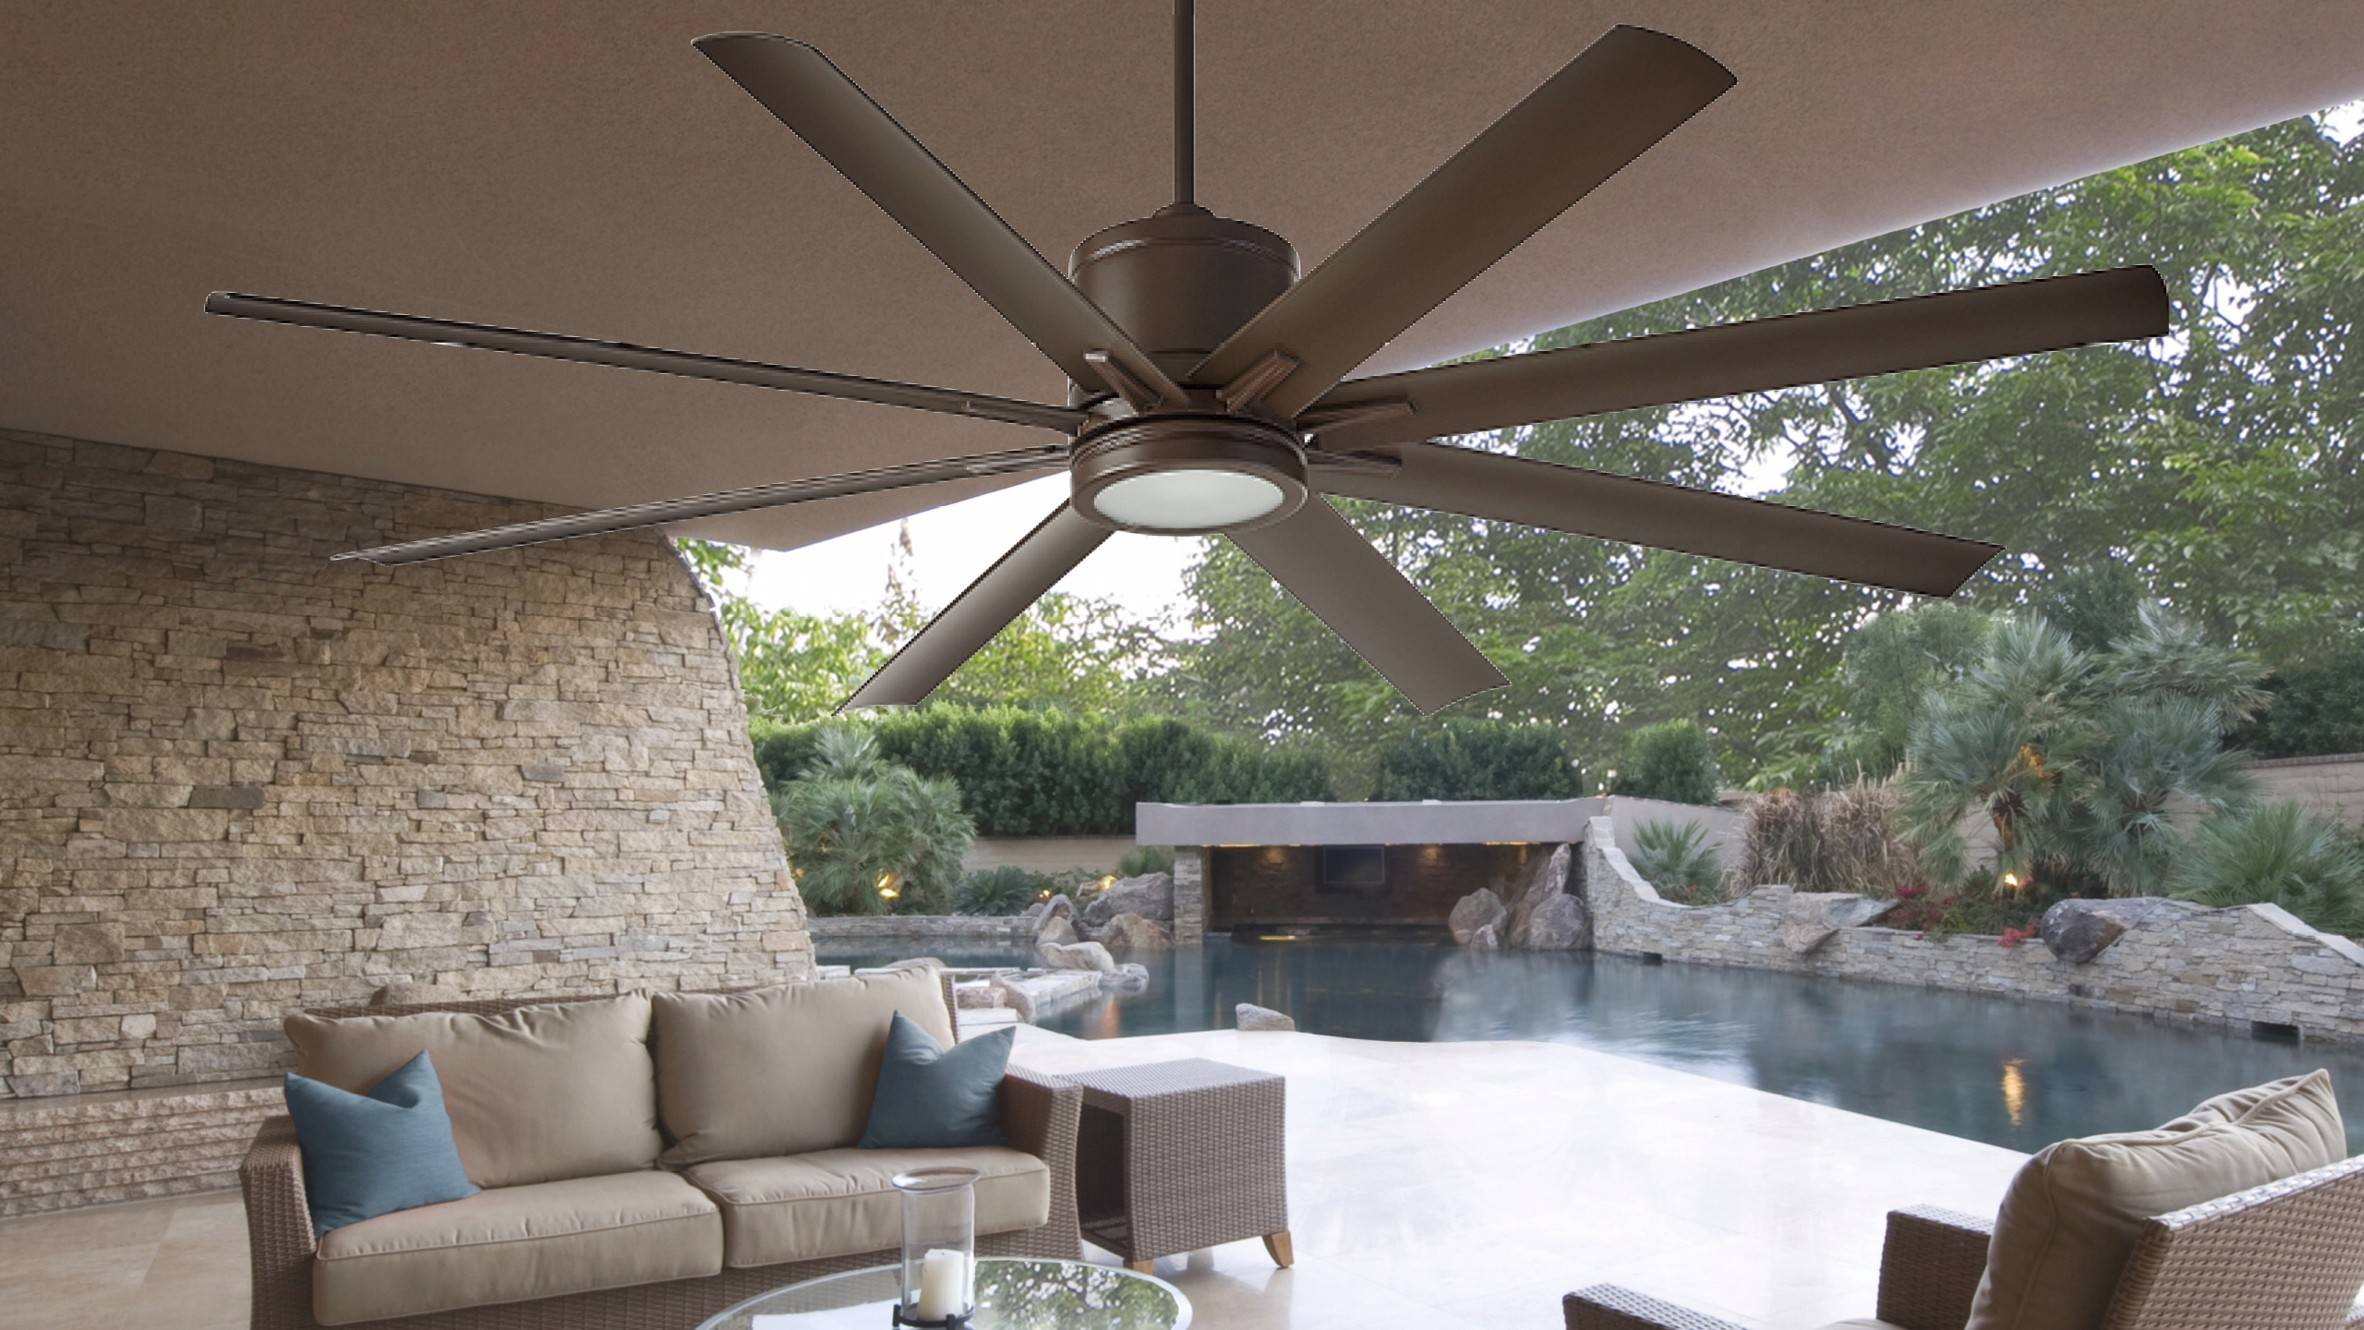 Ceiling fans come in all shapes and sizes, with some models ruggedly designed for outdoor installations.